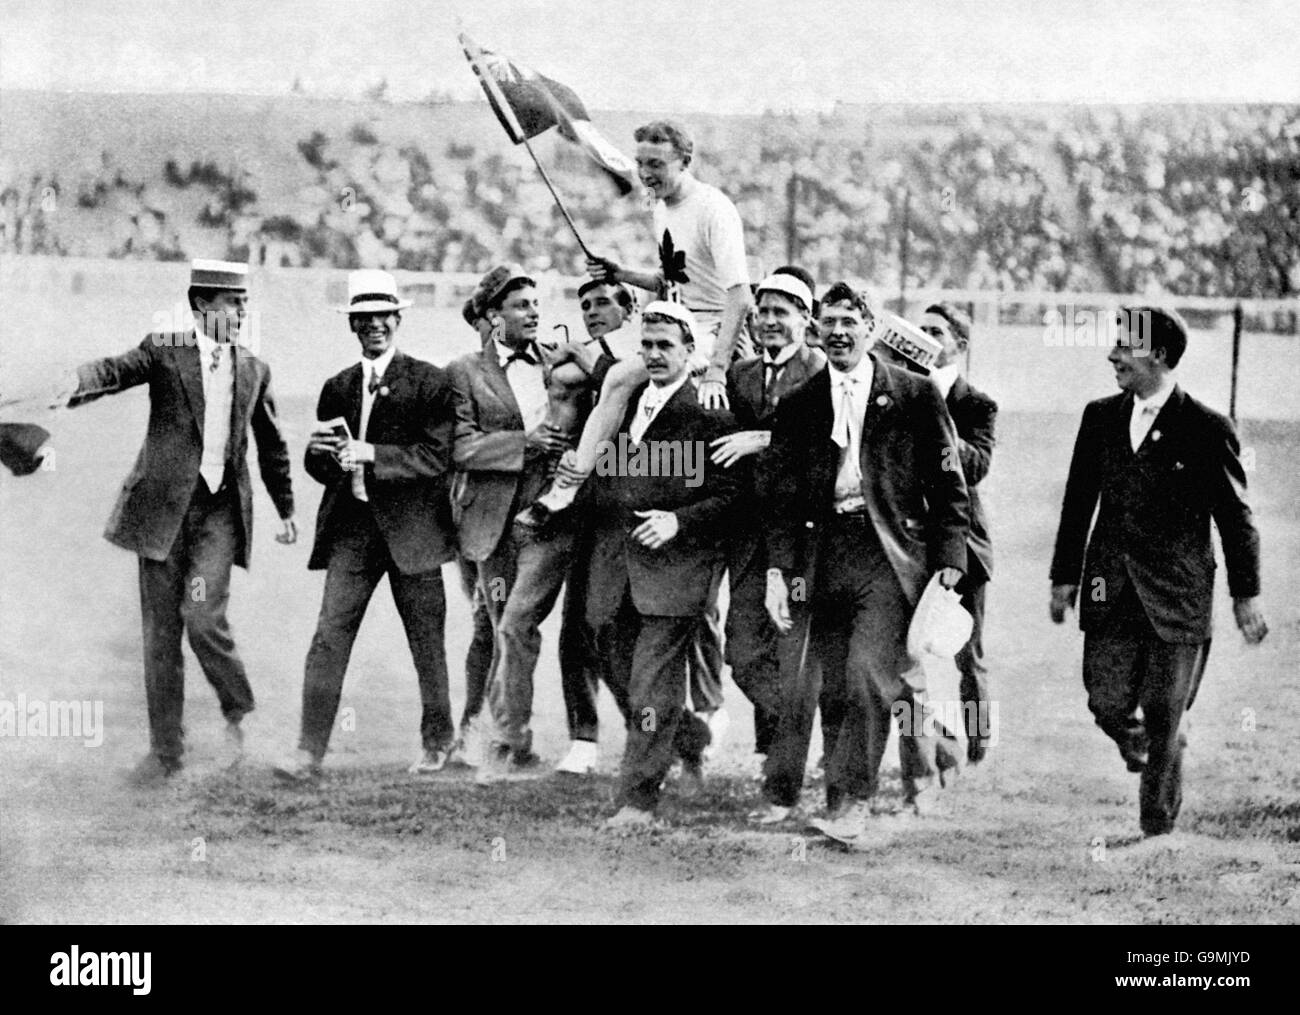 Athletics - London Olympic Games 1908 - 200m - Final - White City - Stock Image